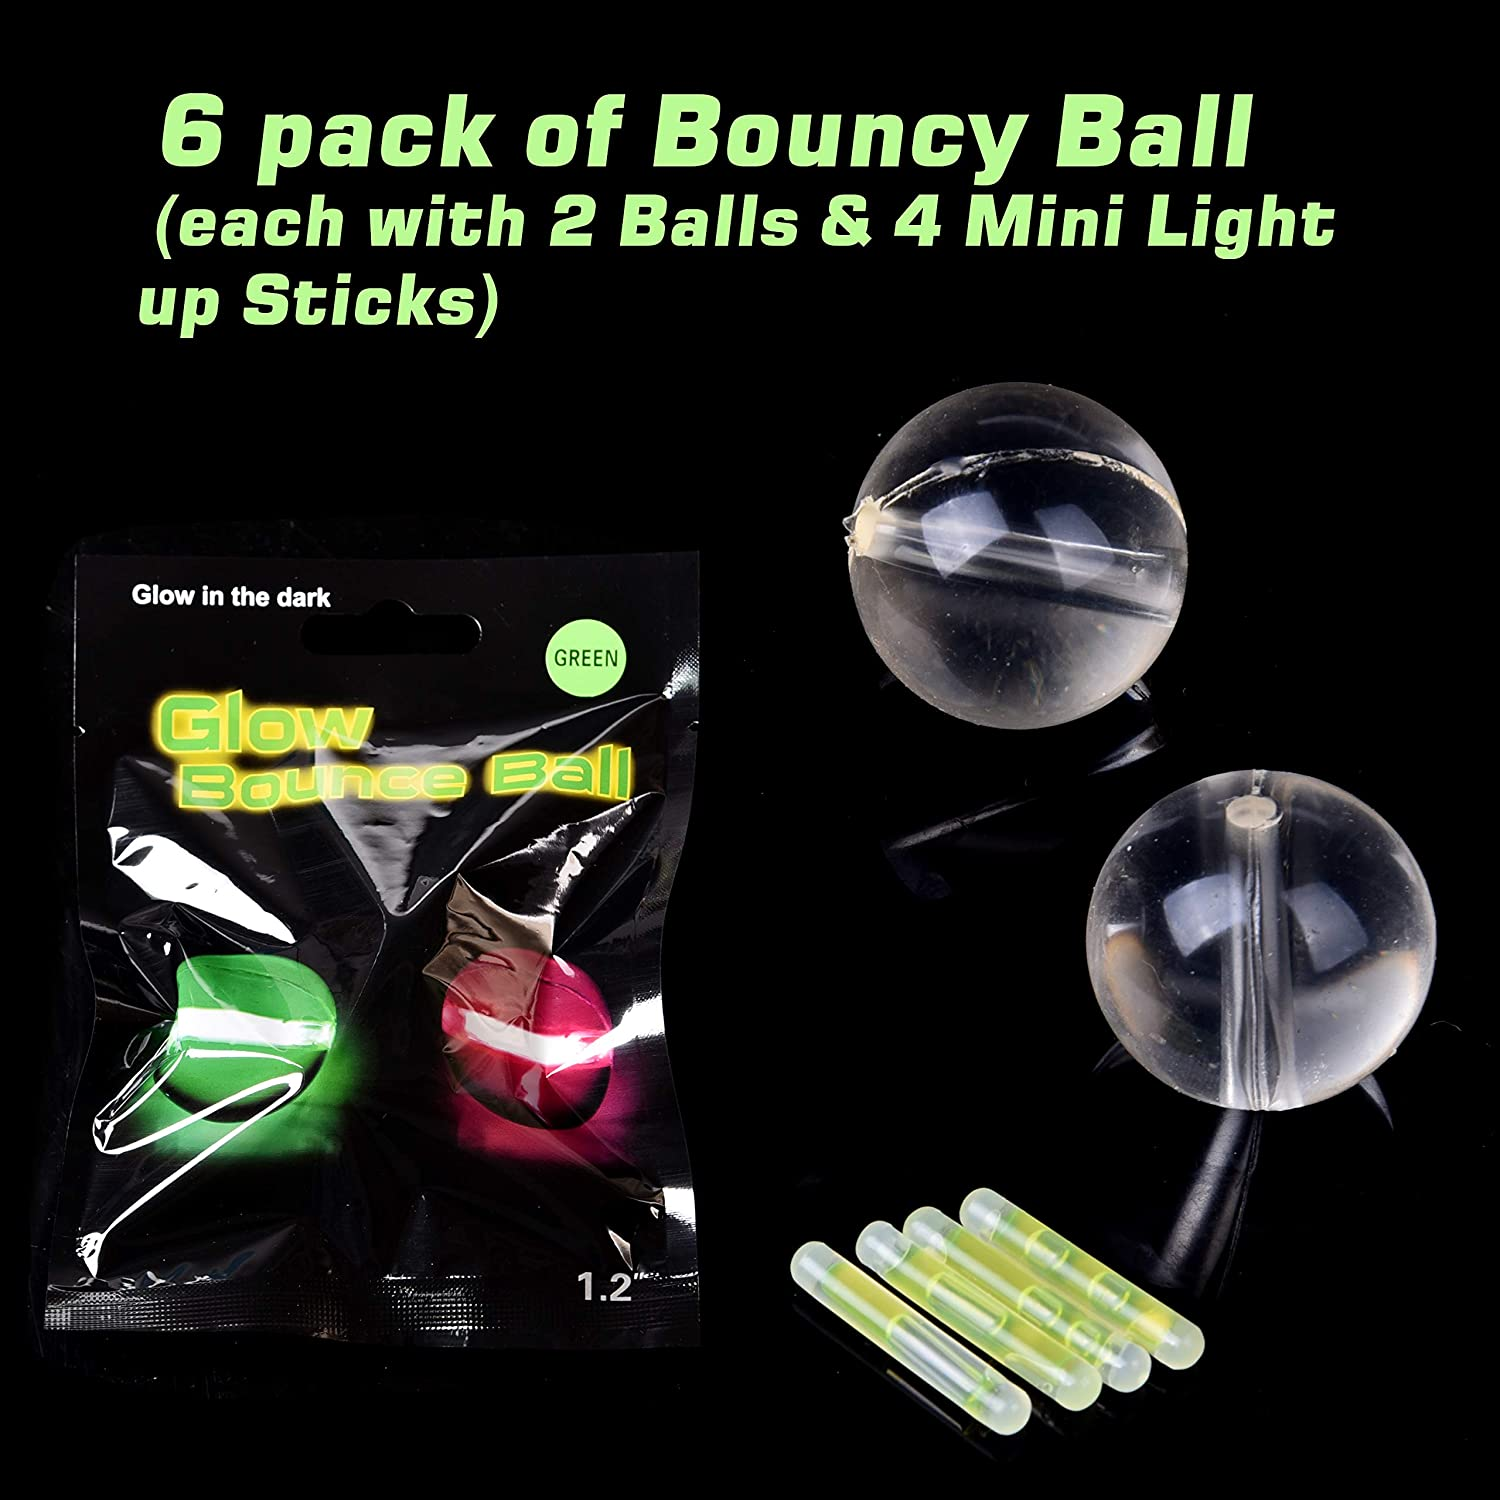 Easter Egg Fillers Including Bouncy Balls, Spinning Tops and Small Glow Sticks Kids Party Favors FUN LITTLE TOYS 12 Pack Glow Sticks for Kids Prizes Easter Egg Stuffers